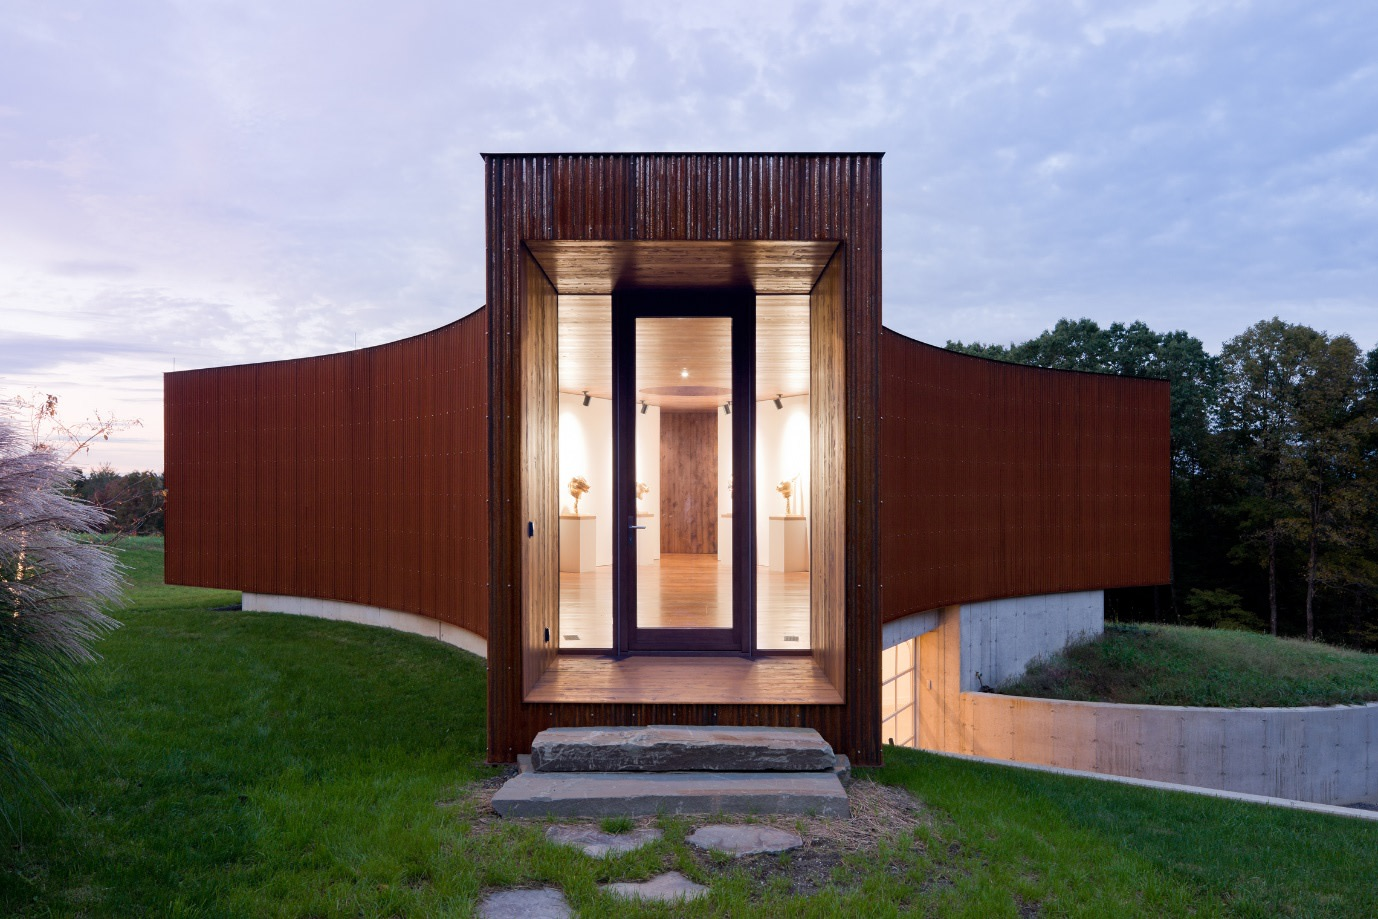 Image source: architizer.com